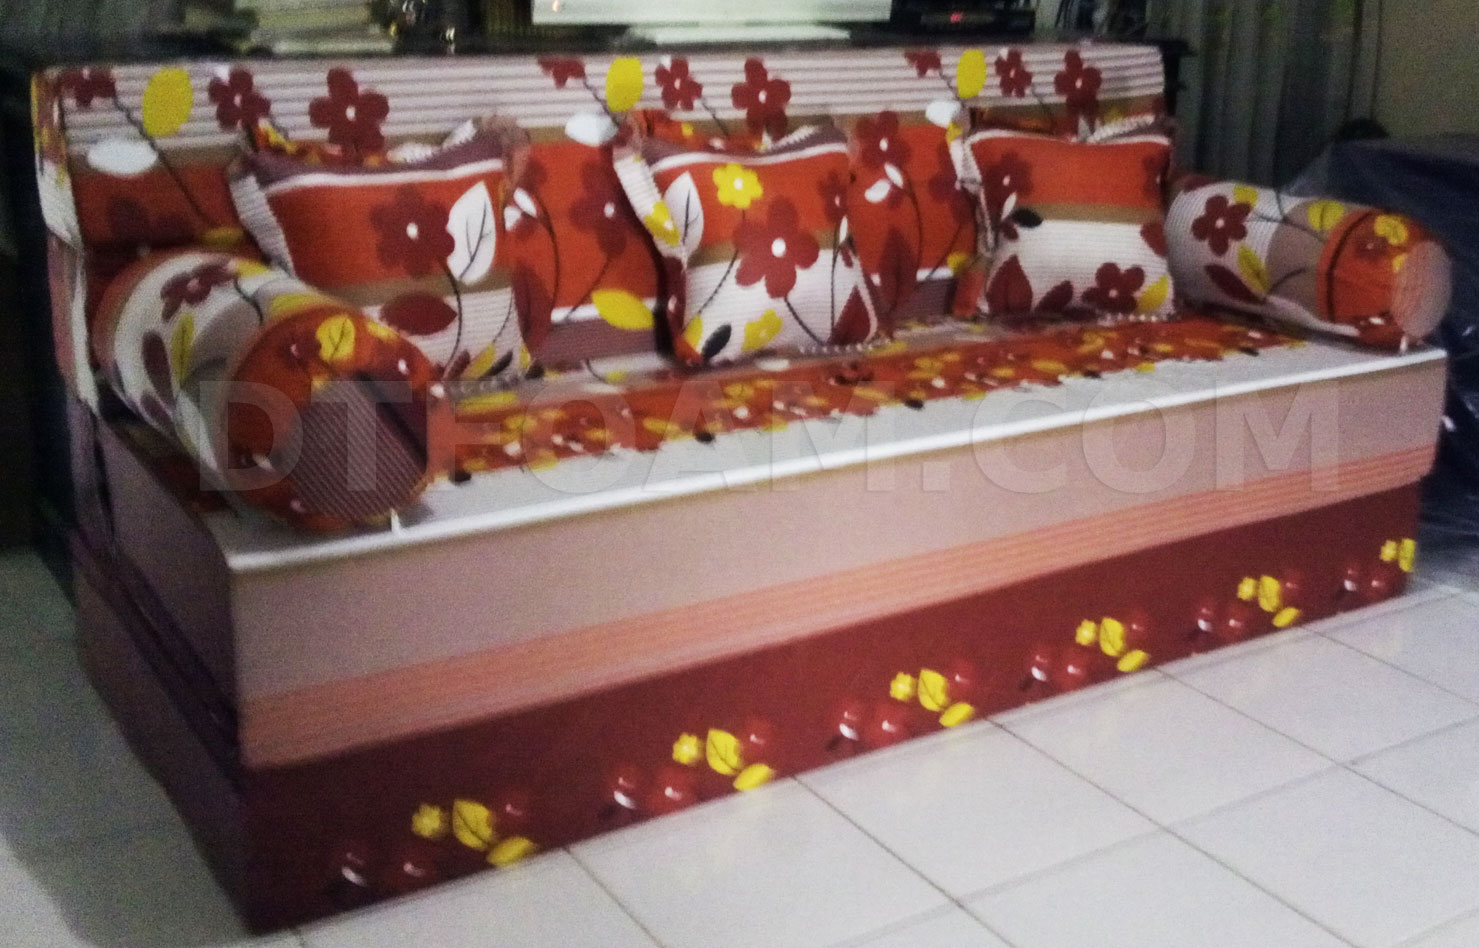 sofa bed lipat murah di surabaya white leather sleeper with adjule arms super kasur inoac autumn merah maroon dtfoam com